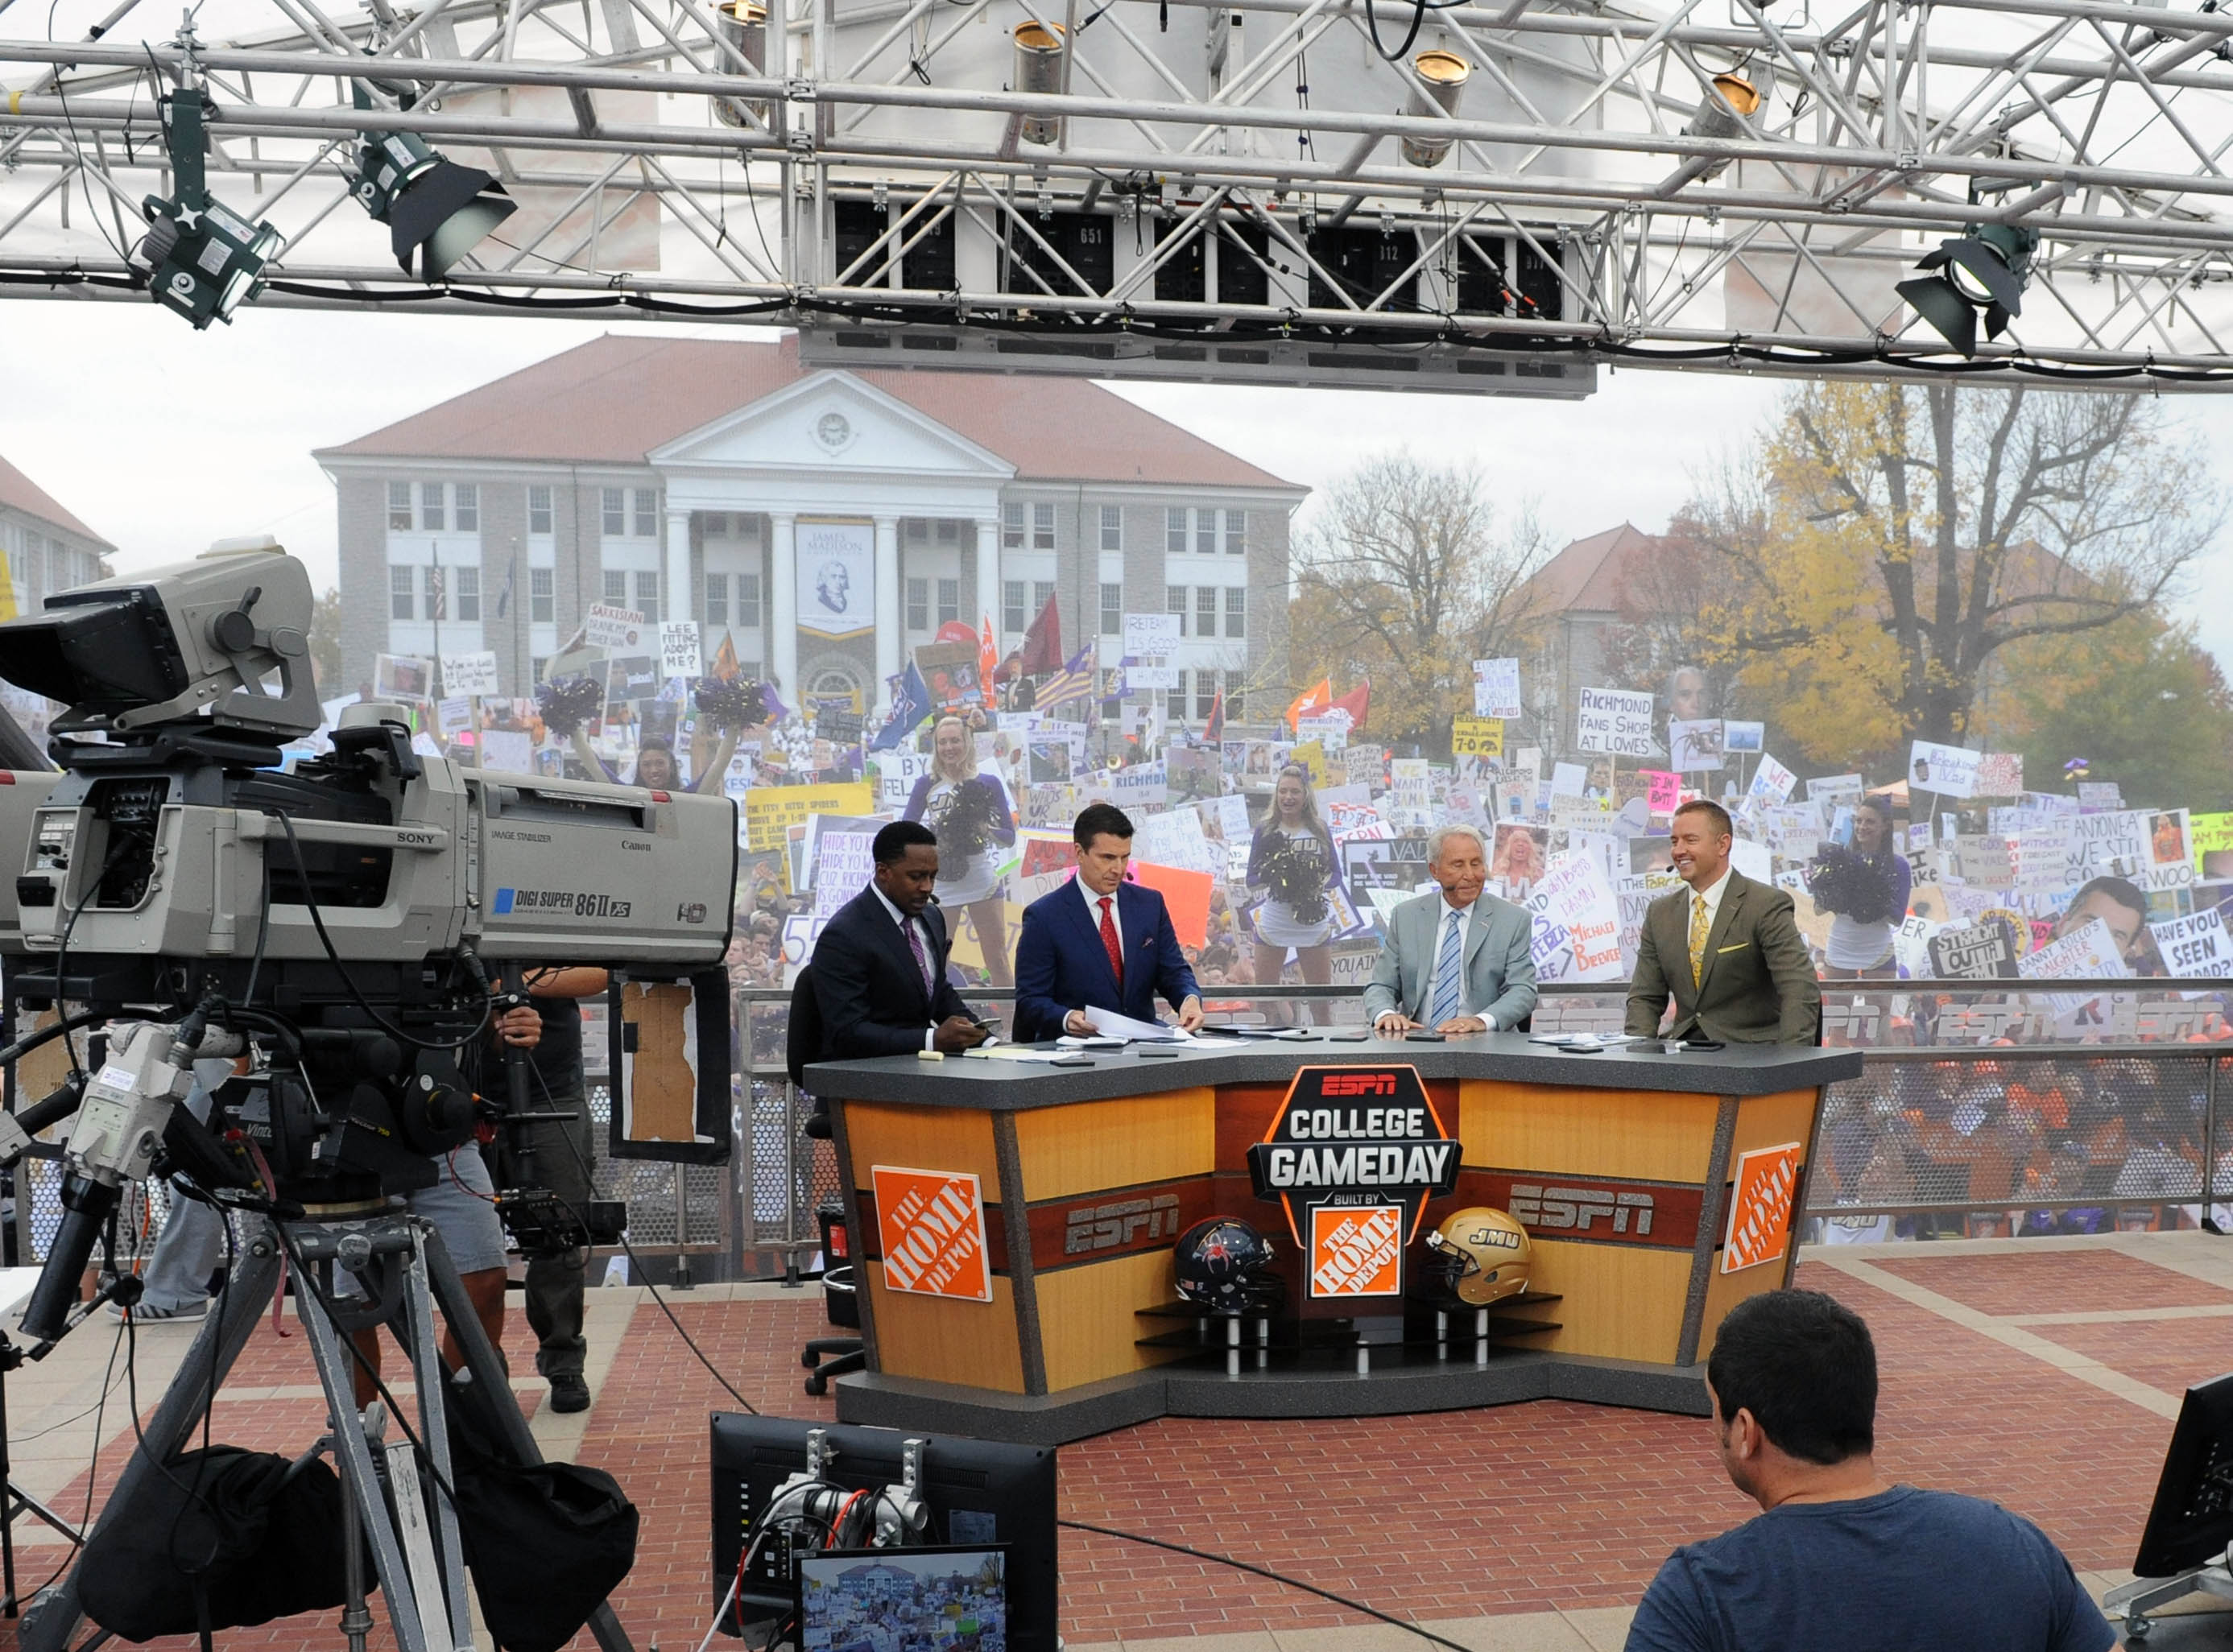 espn college gameday national college football game